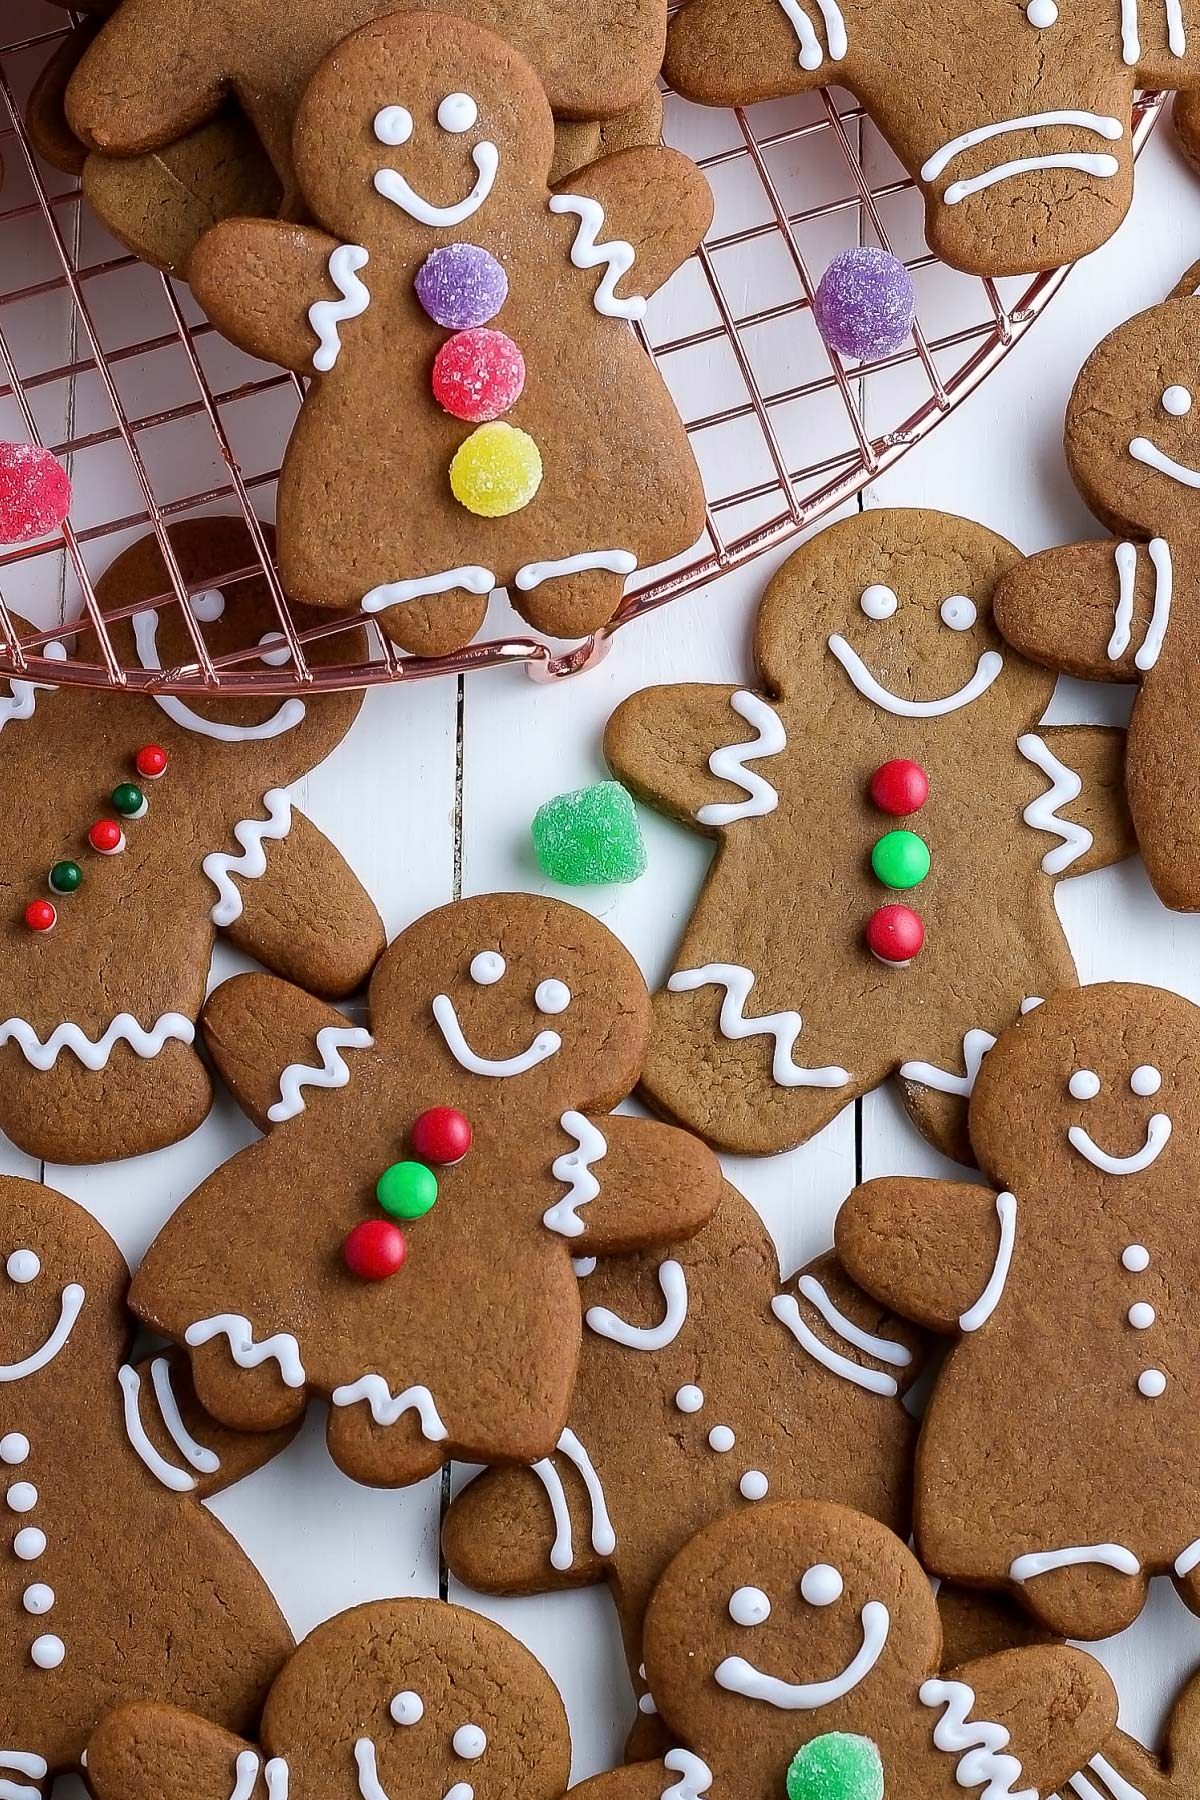 An overhead picture of decorated gingerbread cookies.